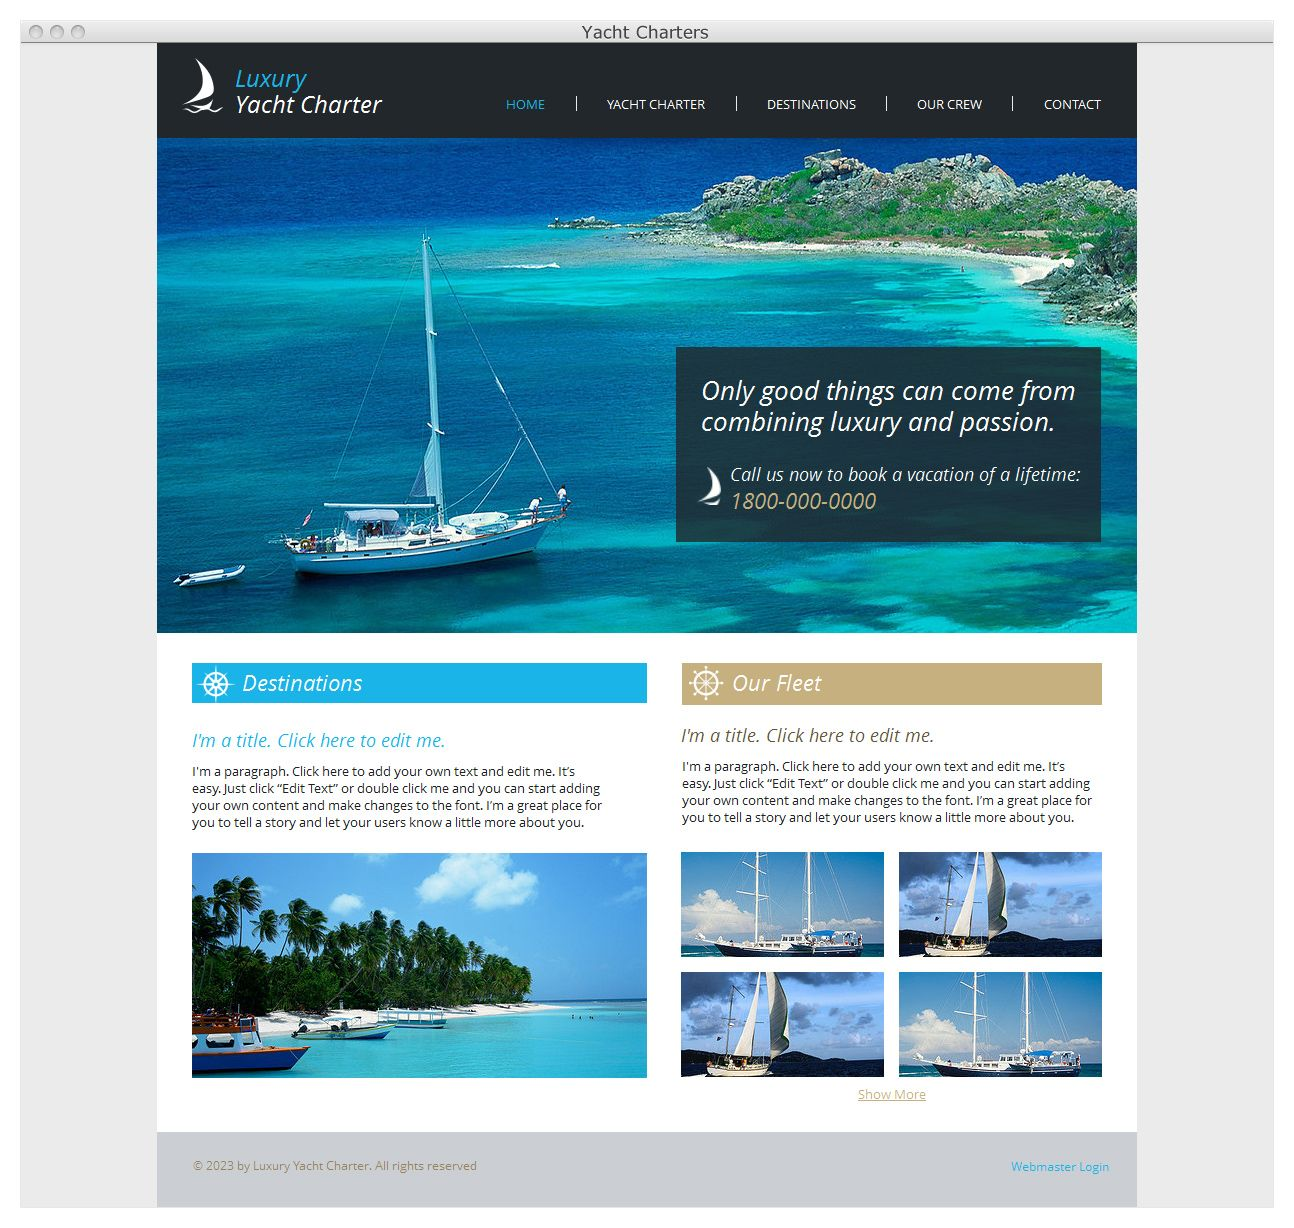 everything looks better from a yachtgreat html5 website